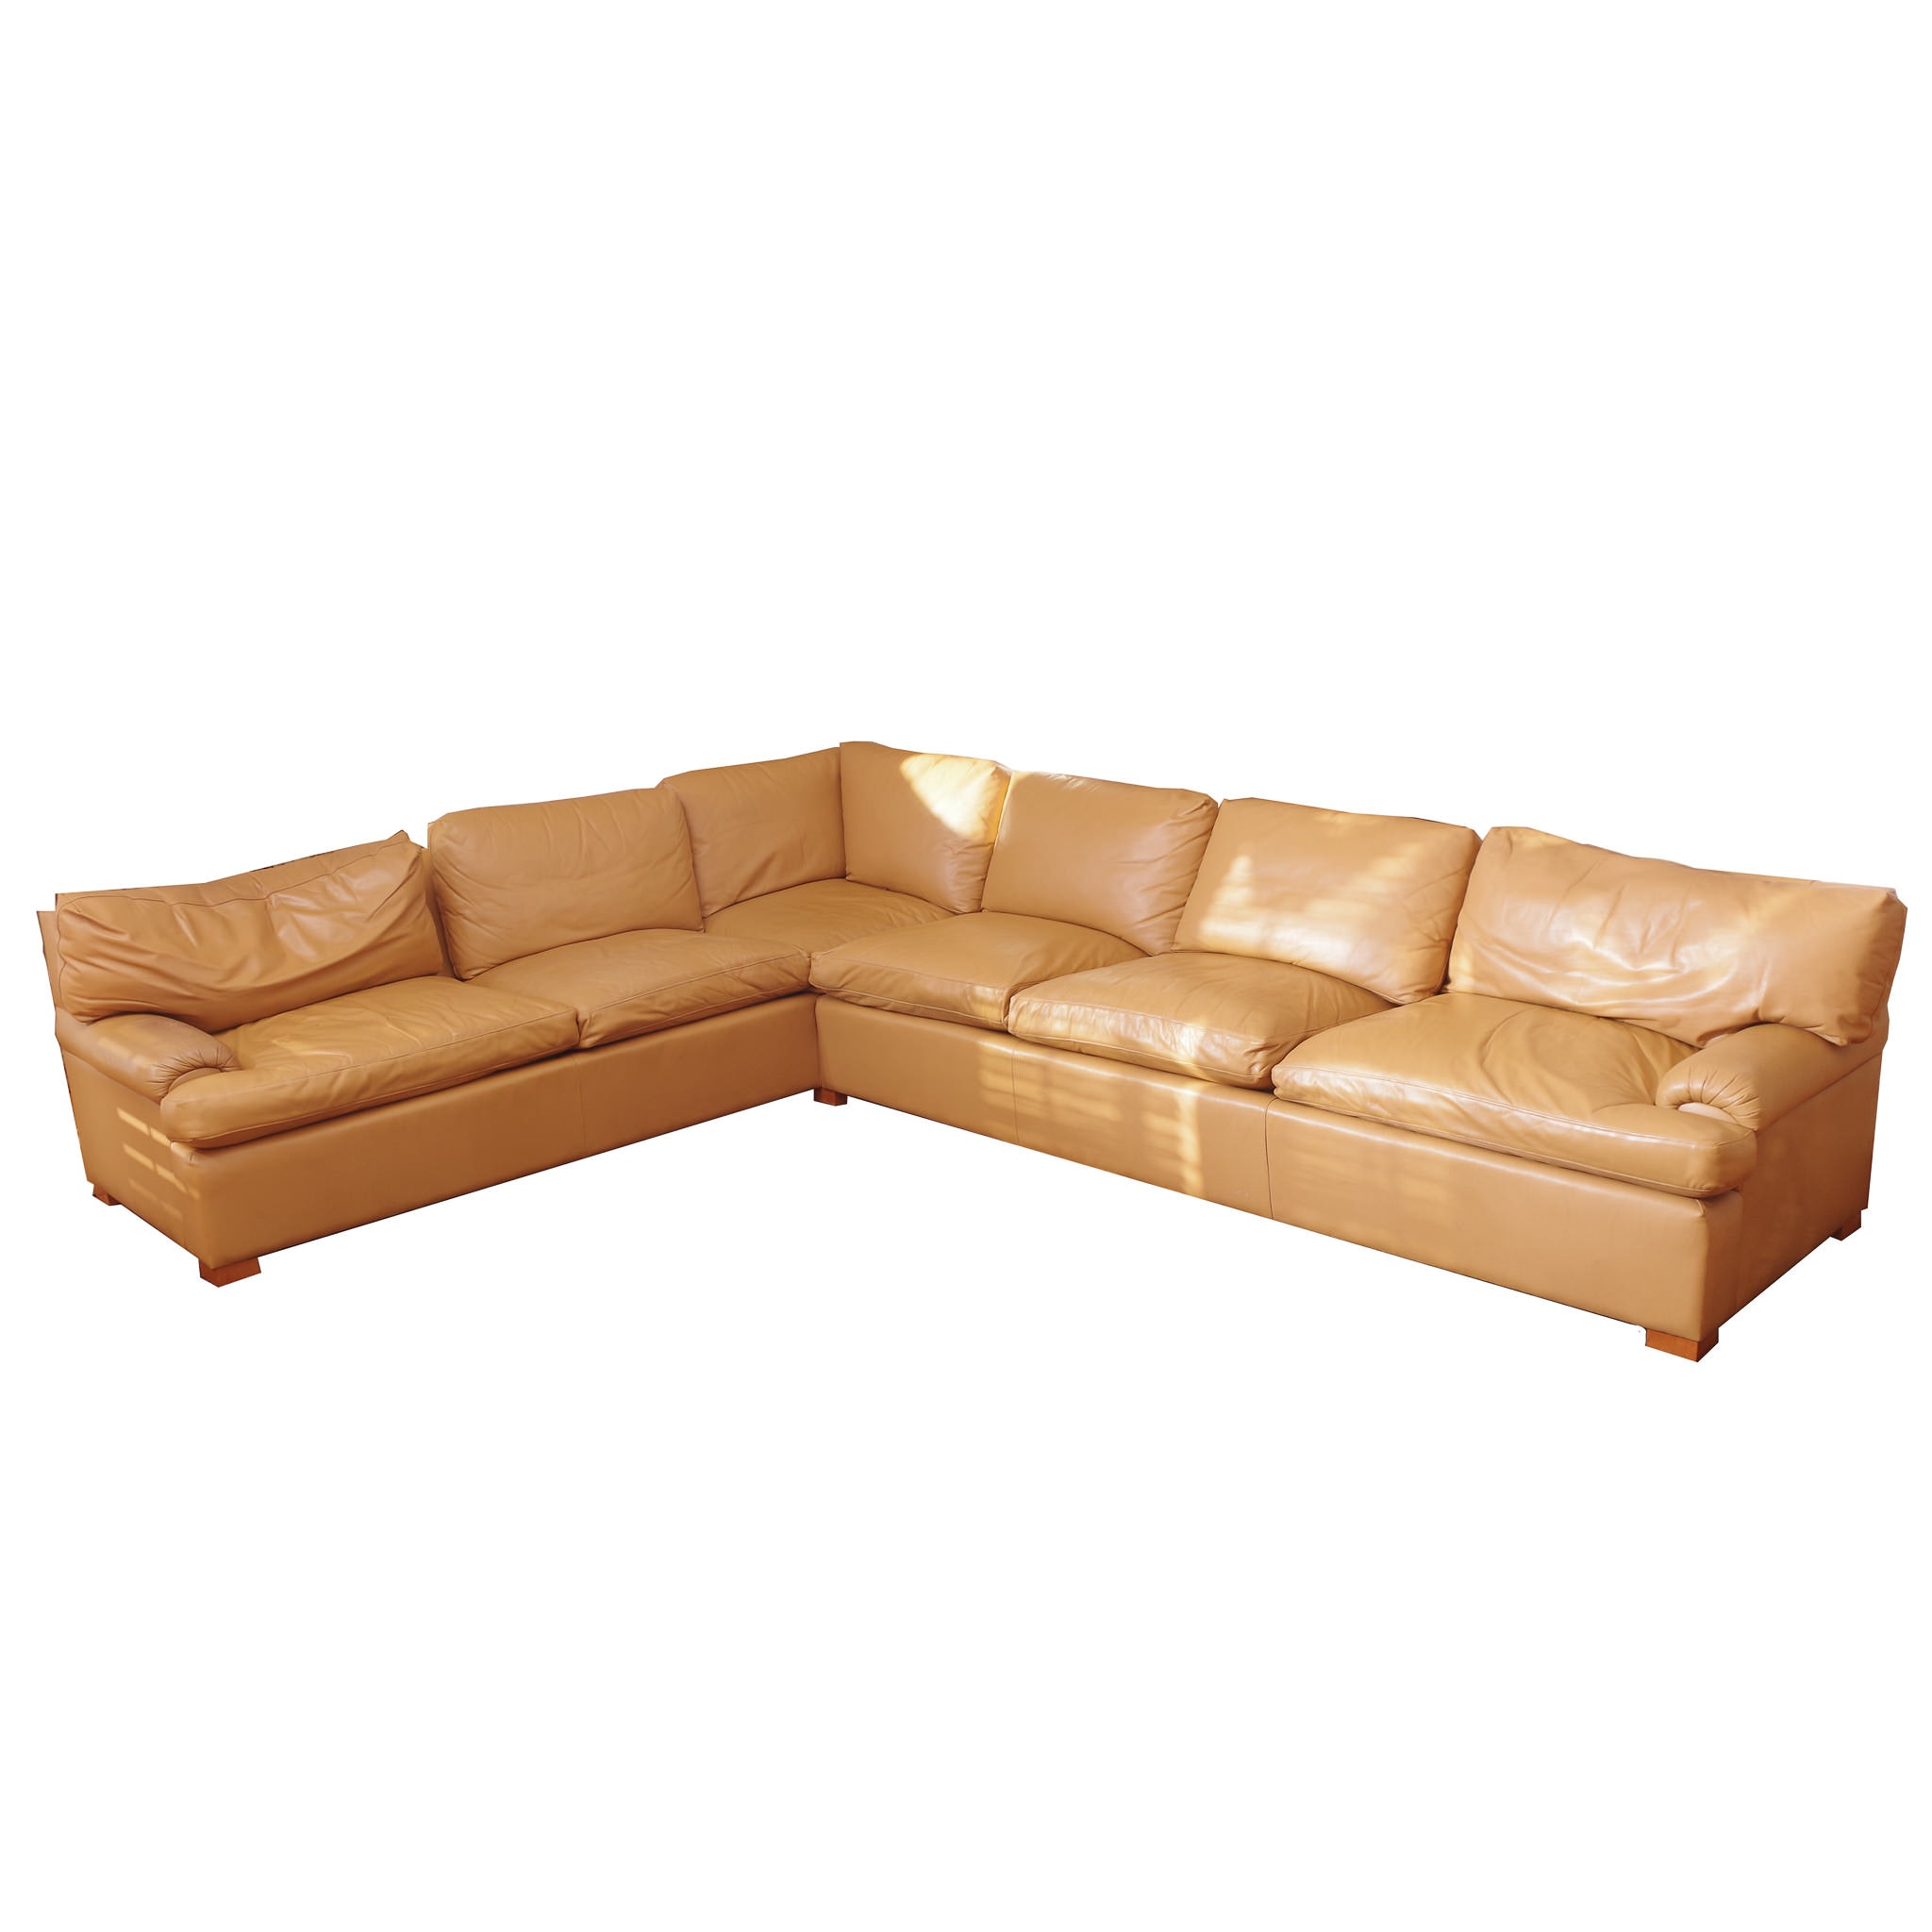 Palliser Two Piece Leather Sectional Sofa